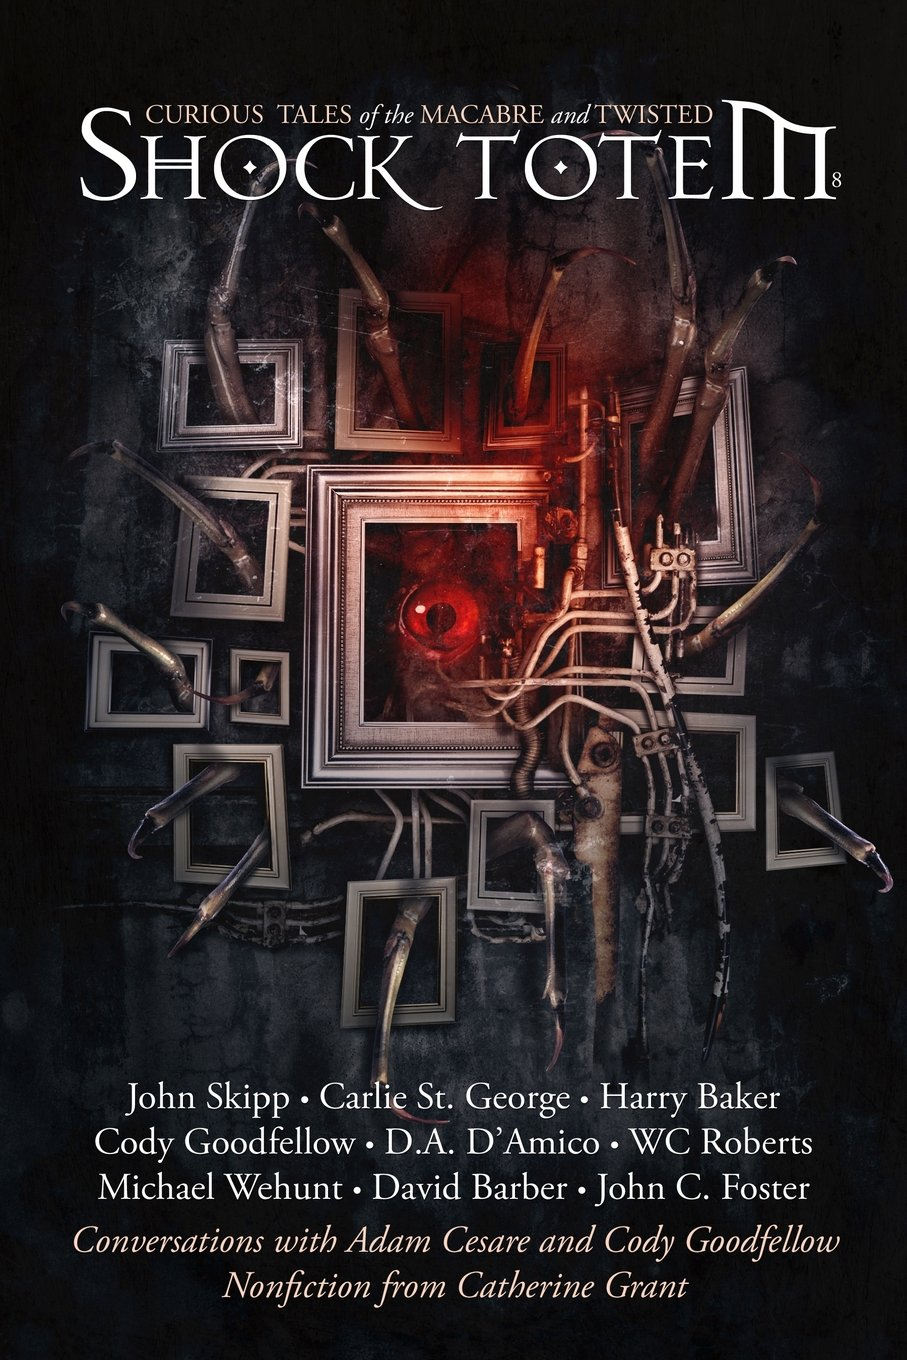 Shock Totem 8: Curious Tales of the Macabre and Twisted pdf epub